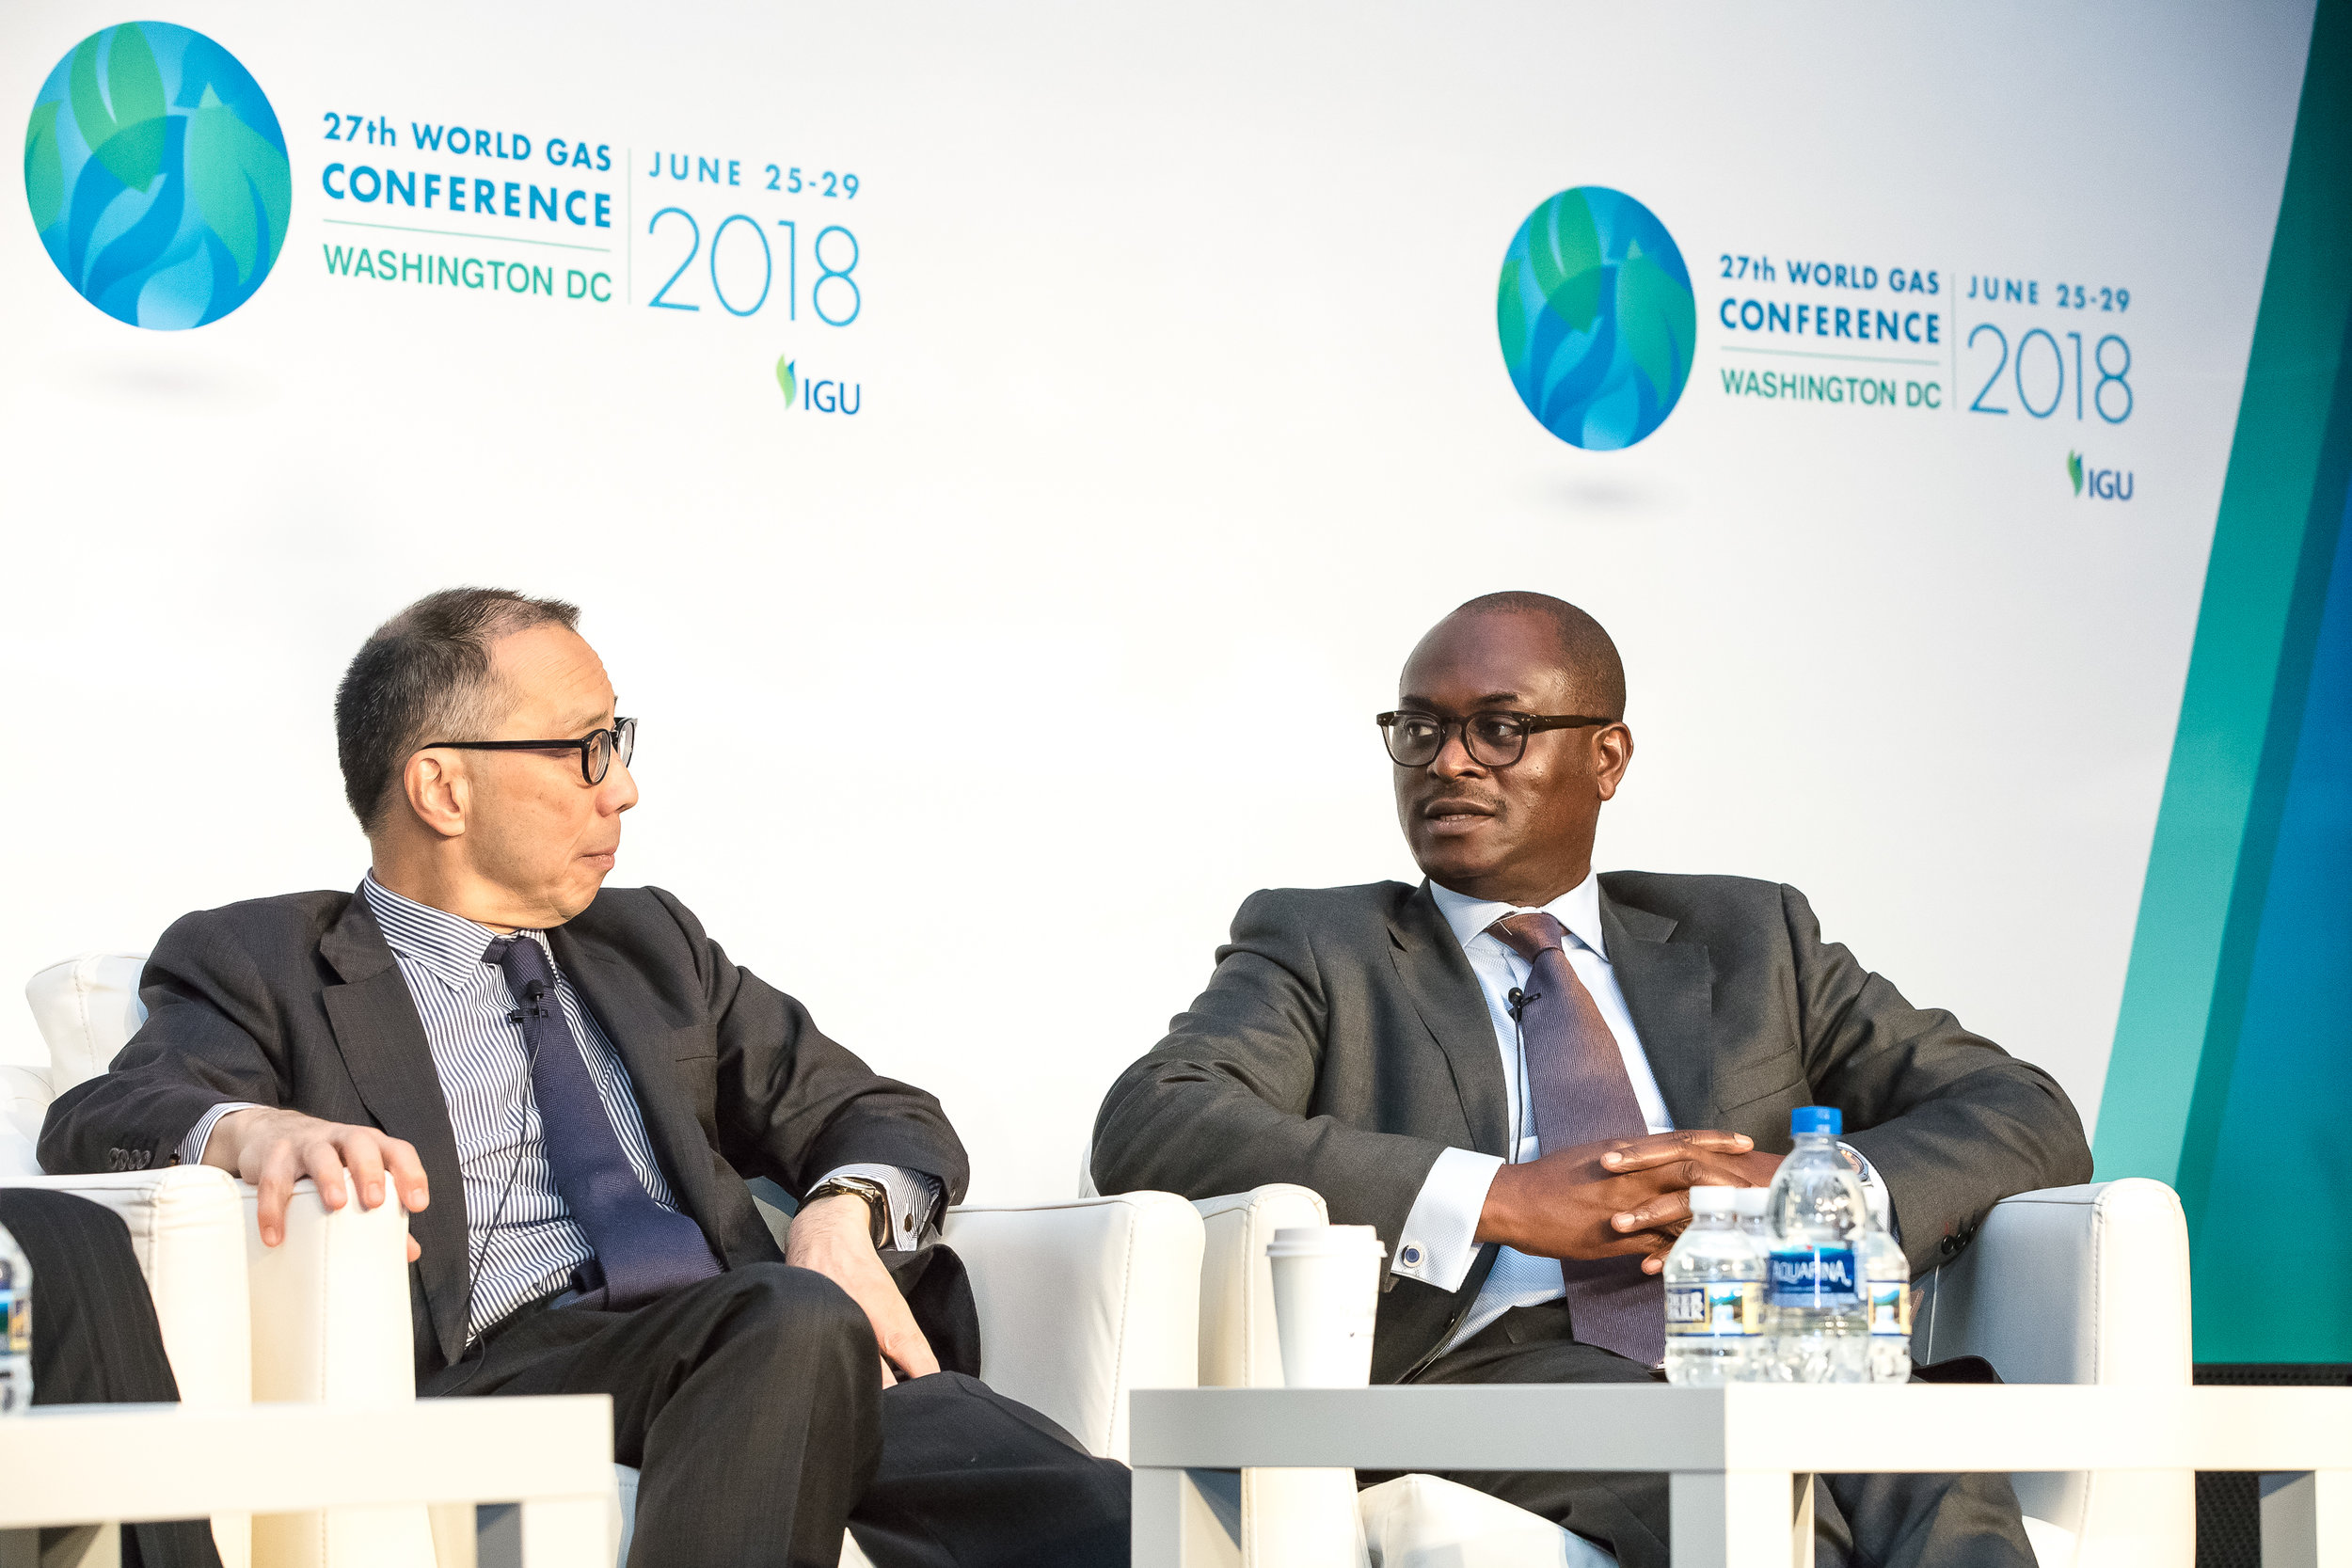 KIMBALL CHEN, CHAIRMAN OF GLPGP (LEFT) AND DAYO ADESHINA, PROGRAMME MANAGER OF THE NATIONAL LPG EXPANSION PLAN, FEDERAL REPUBLIC OF NIGERIA (RIGHT) SPEAKING AT THE 'LPG - THE GATEWAY TO NATURAL GAS' SESSION AT THE WORLD GAS CONFERENCE ON JUNE 29, 2018